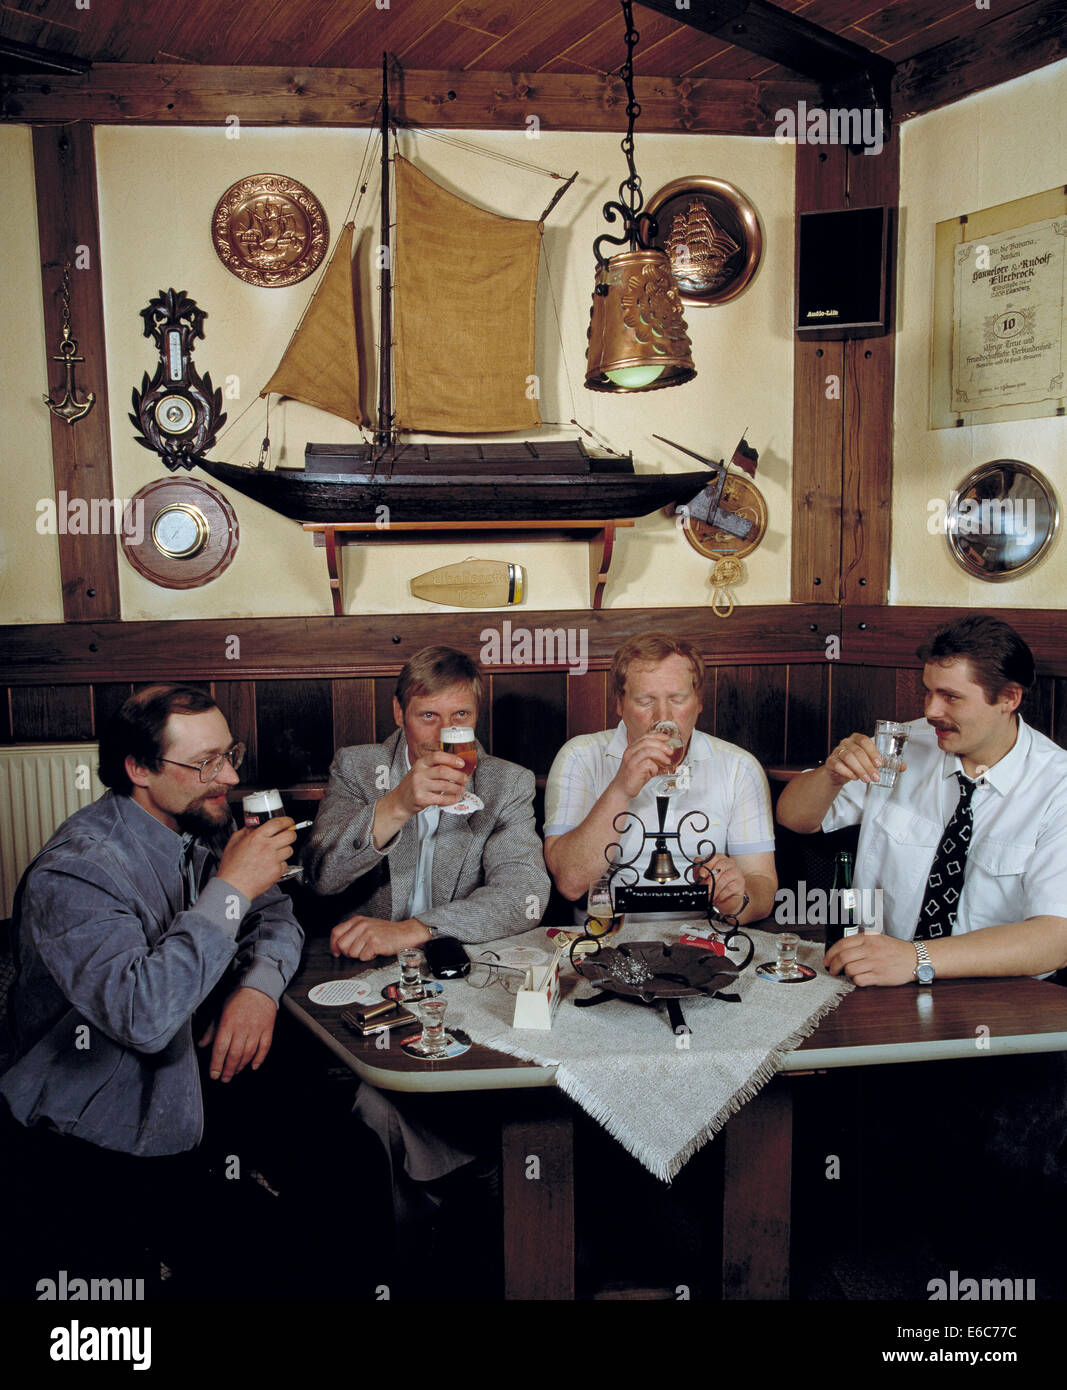 public house, group of regulars, four men sitting at a crackerbarrel drinking beer, quitting time, freetime, relaxation, - Stock Image